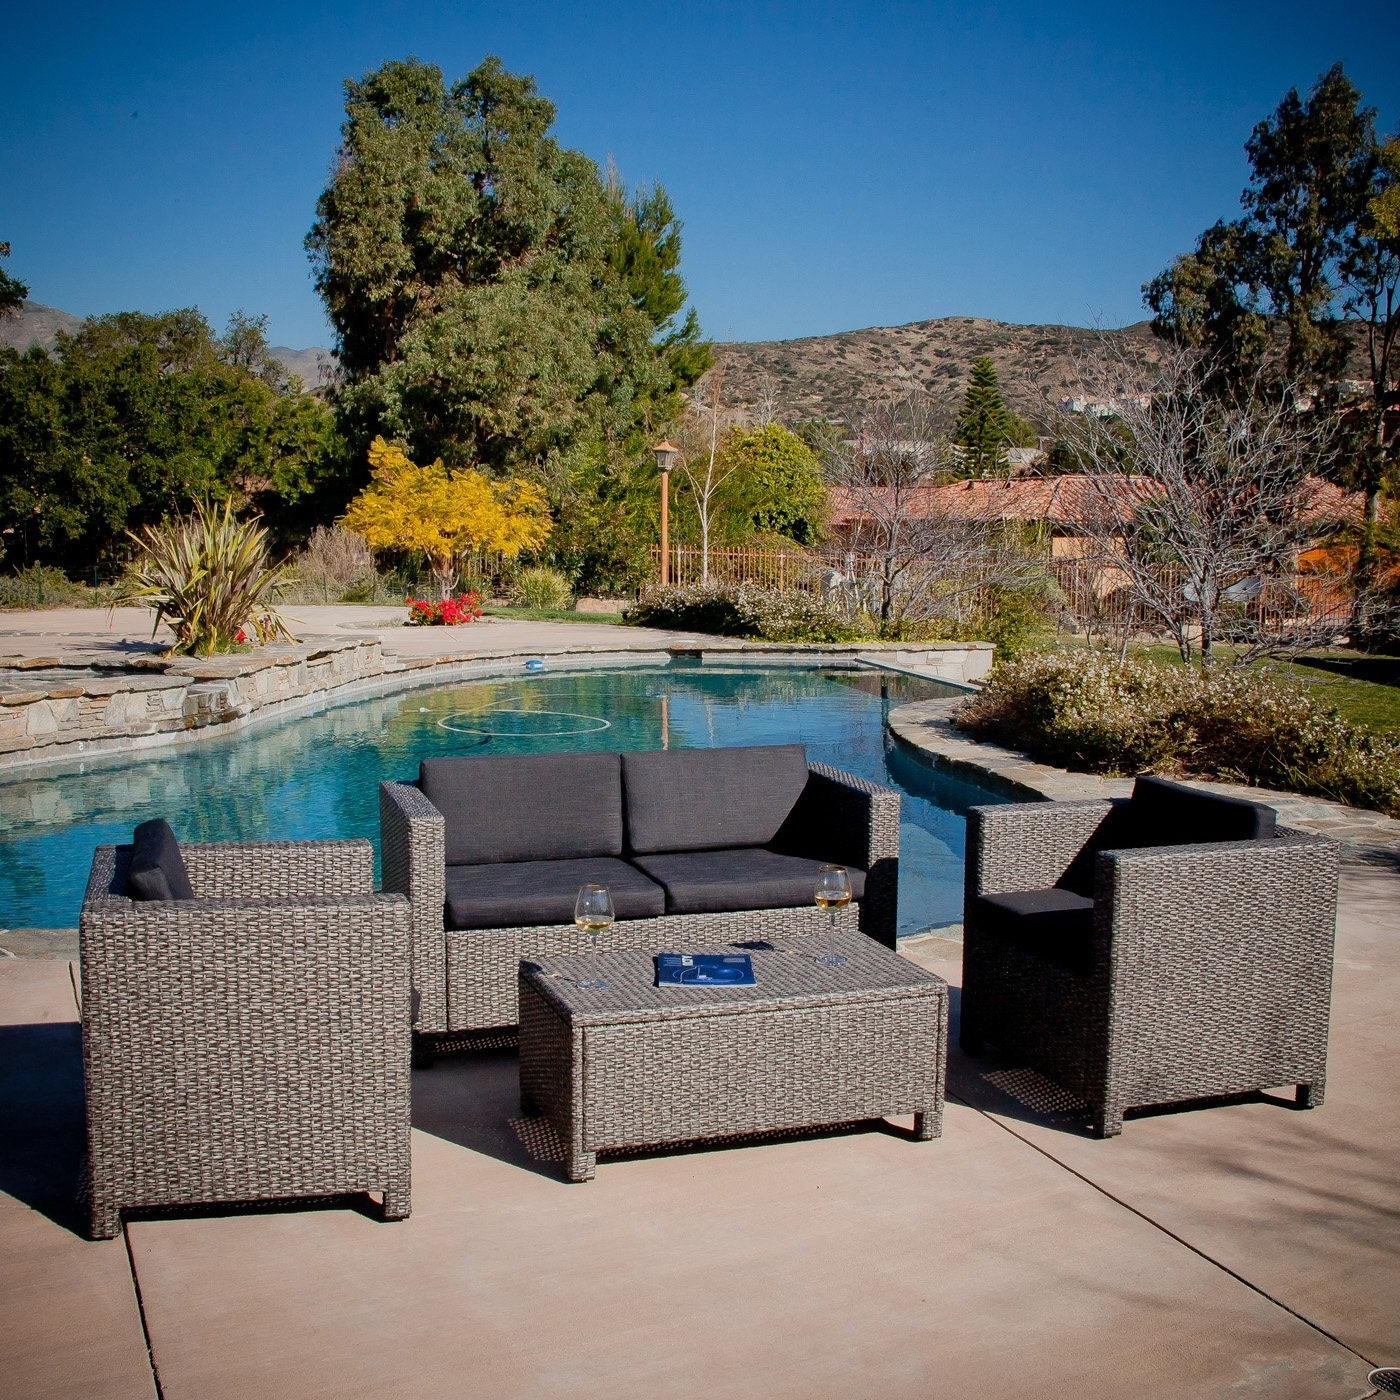 Best Selling Home Decor Puerta Grey Outdoor Wicker Sofa Set (View 3 of 20)